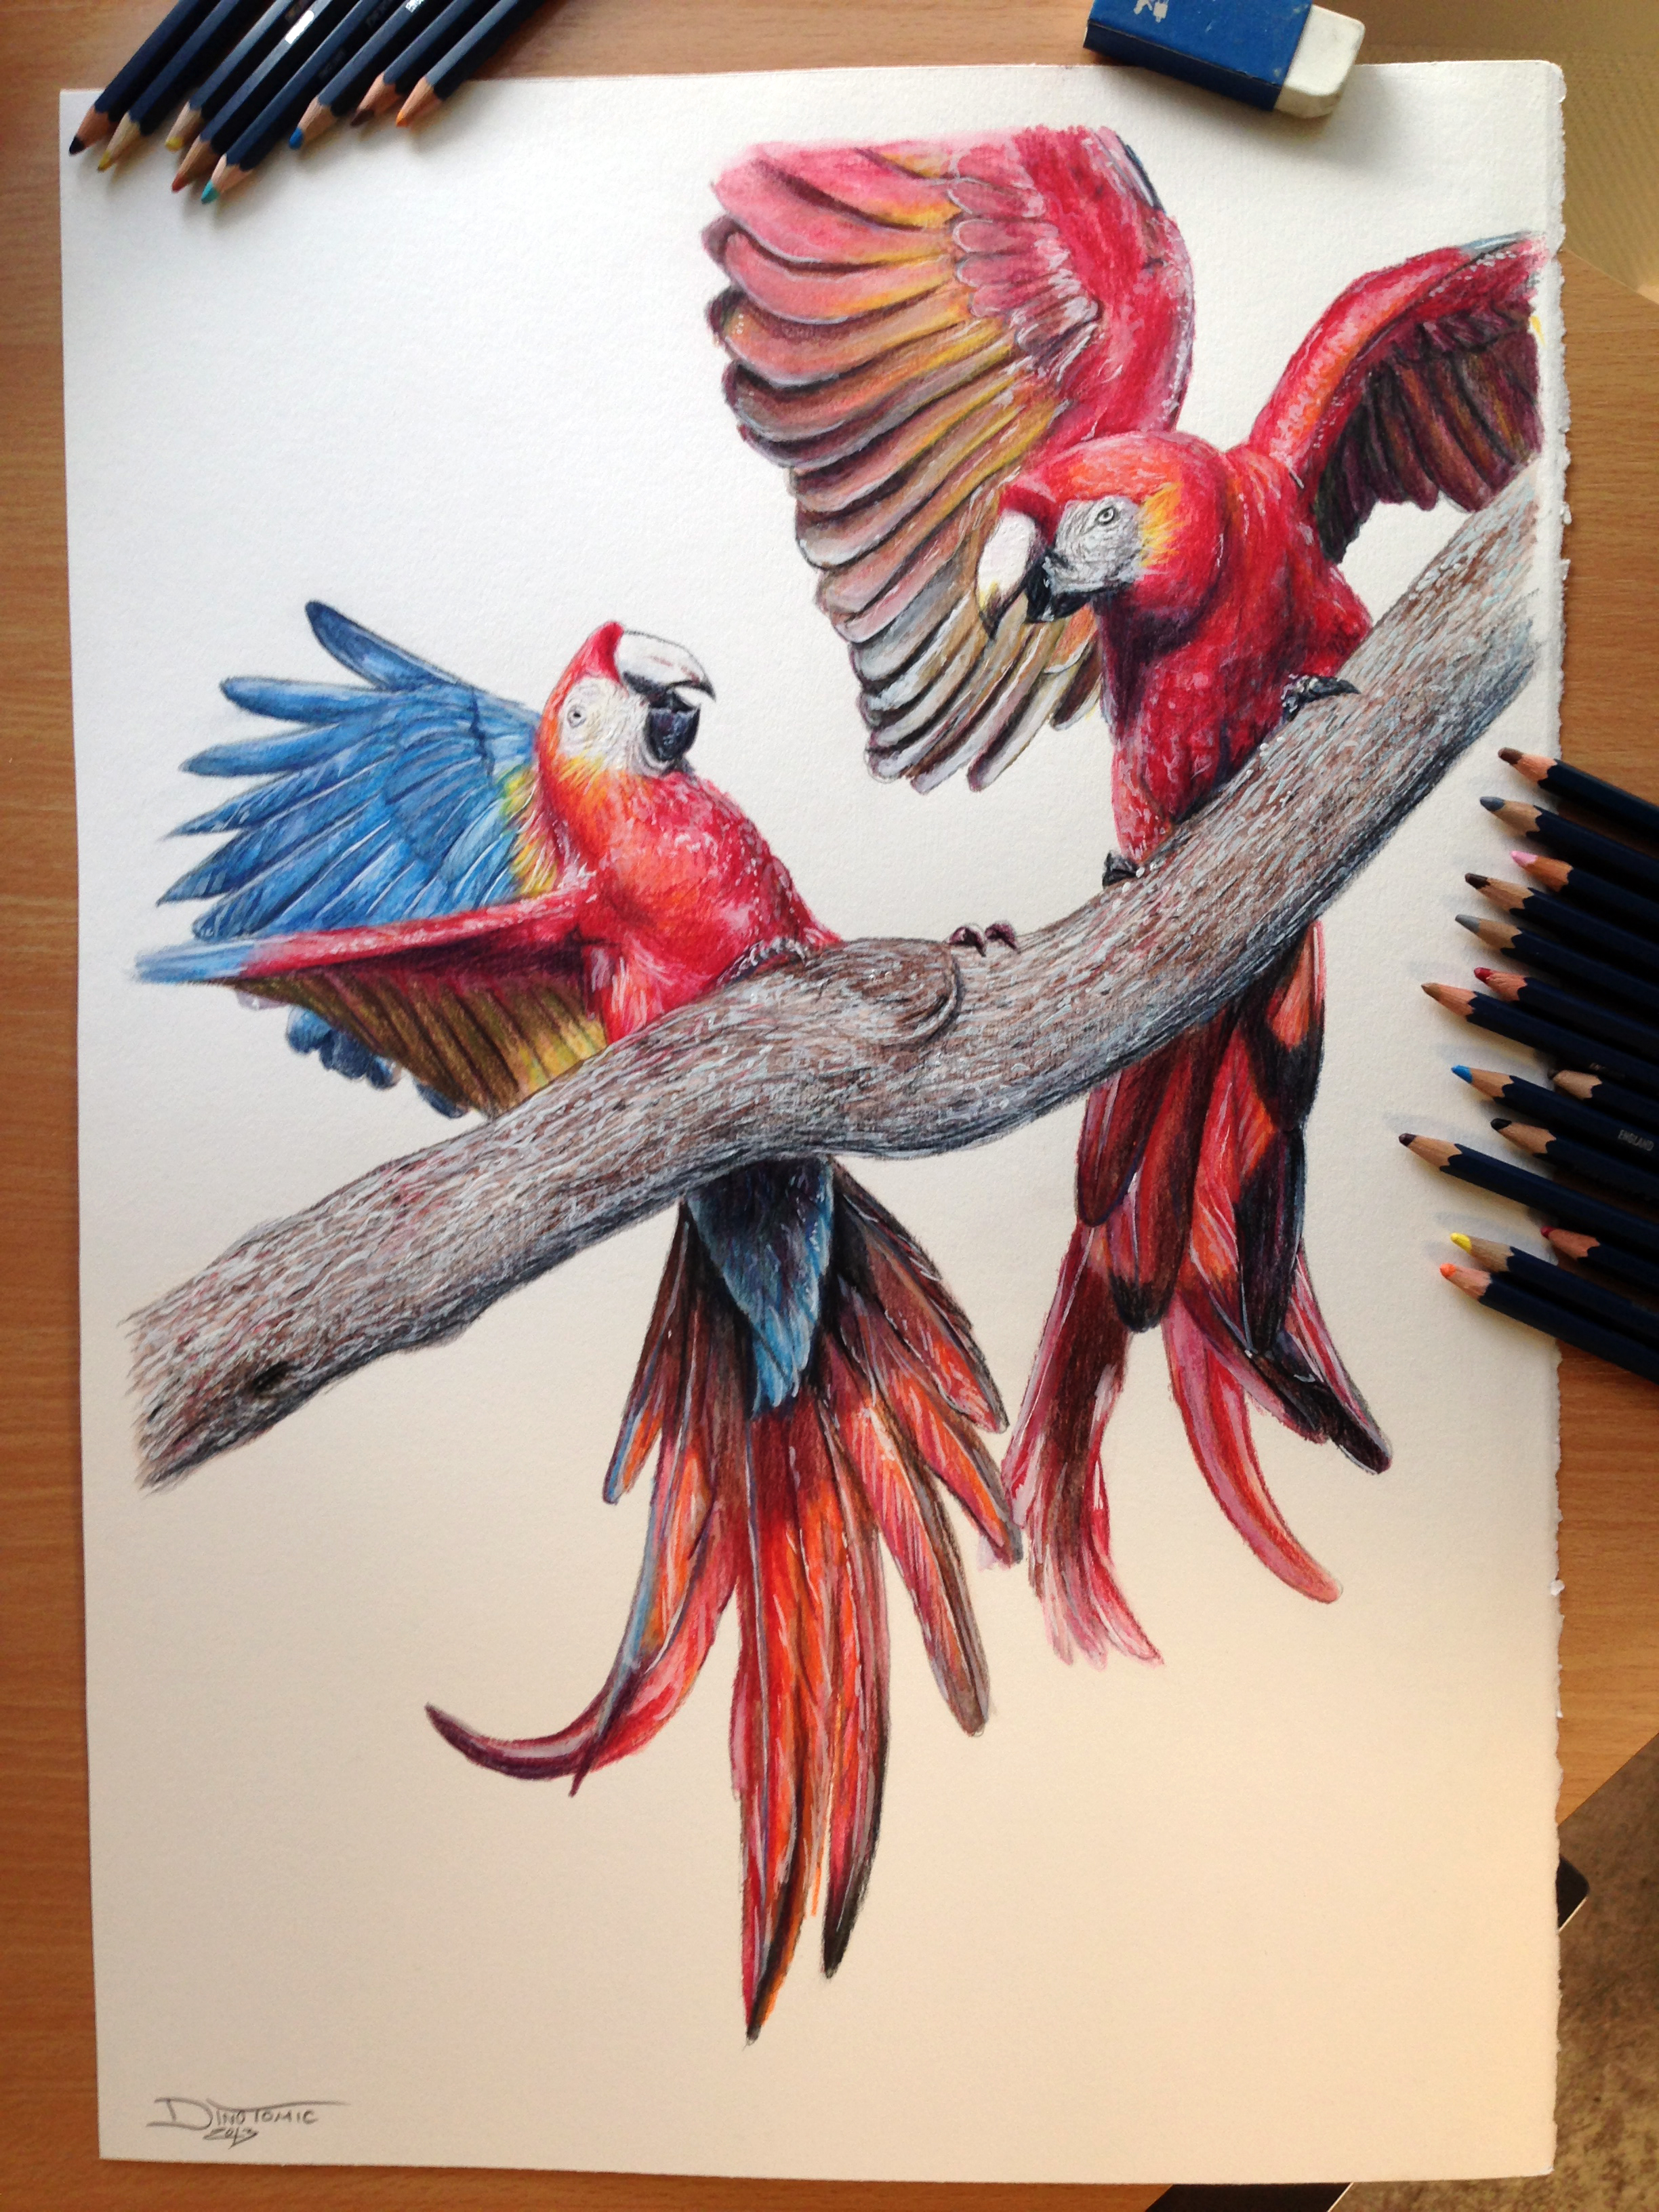 Aras Color Pencil Drawing By Atomiccircus On Deviantart Colored Drawings